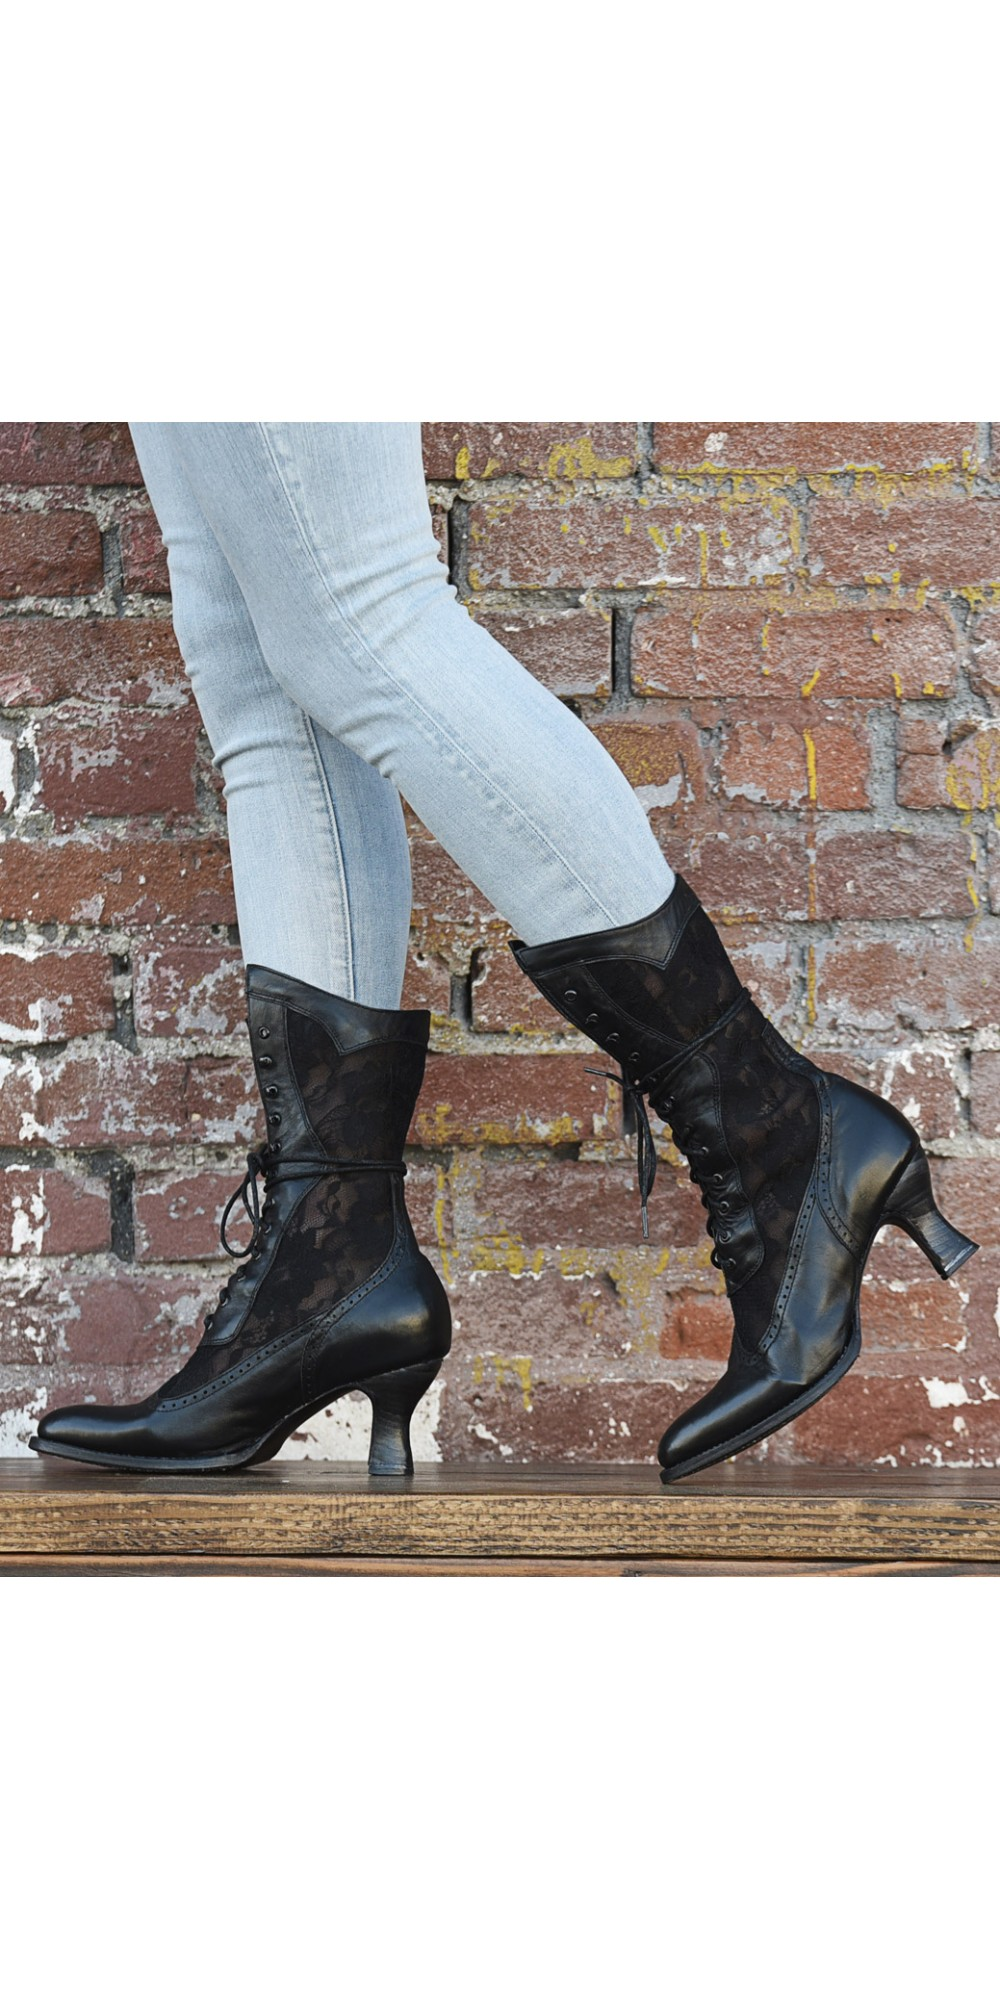 Victorian Inspired Leather \u0026 Lace Boots